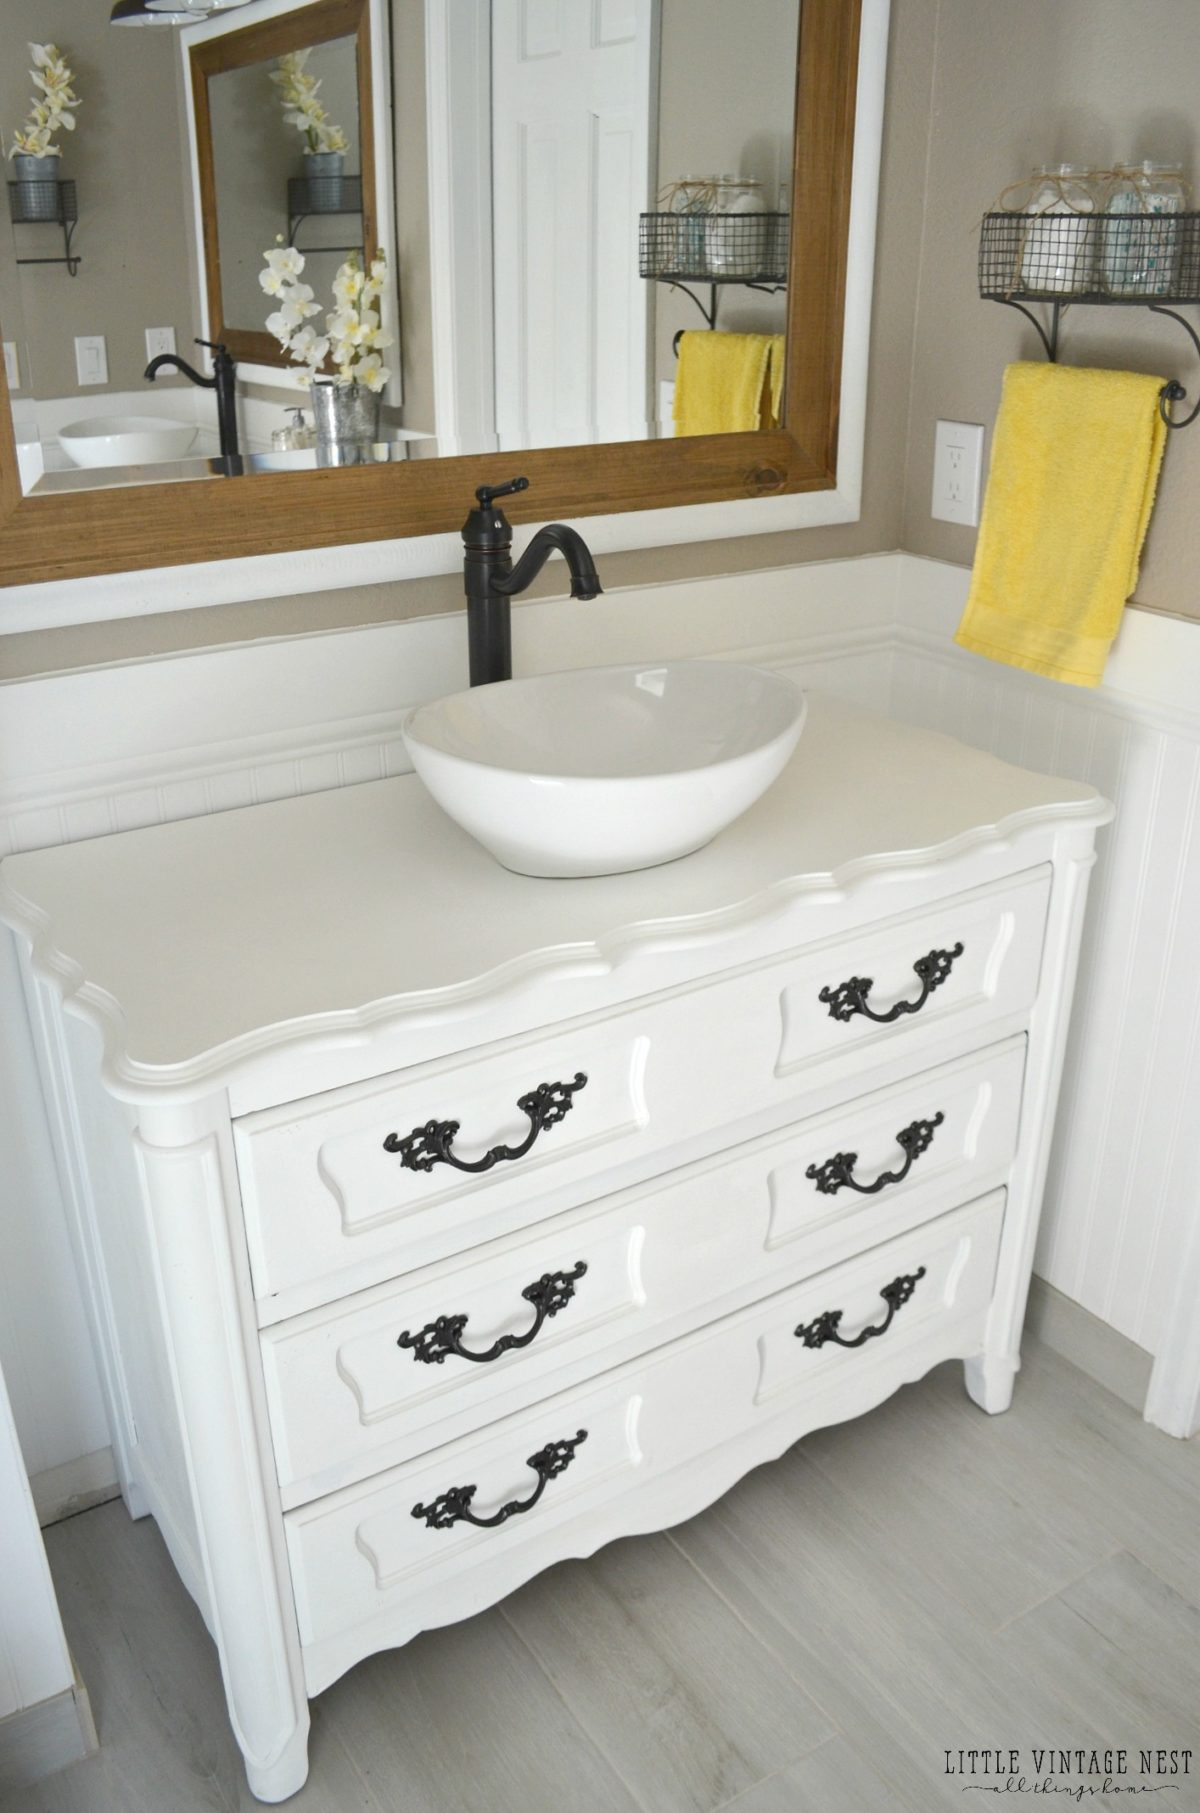 Ordinaire Step By Step Tutorial To Turn An Old Dresser Into Bathroom Vanity ...